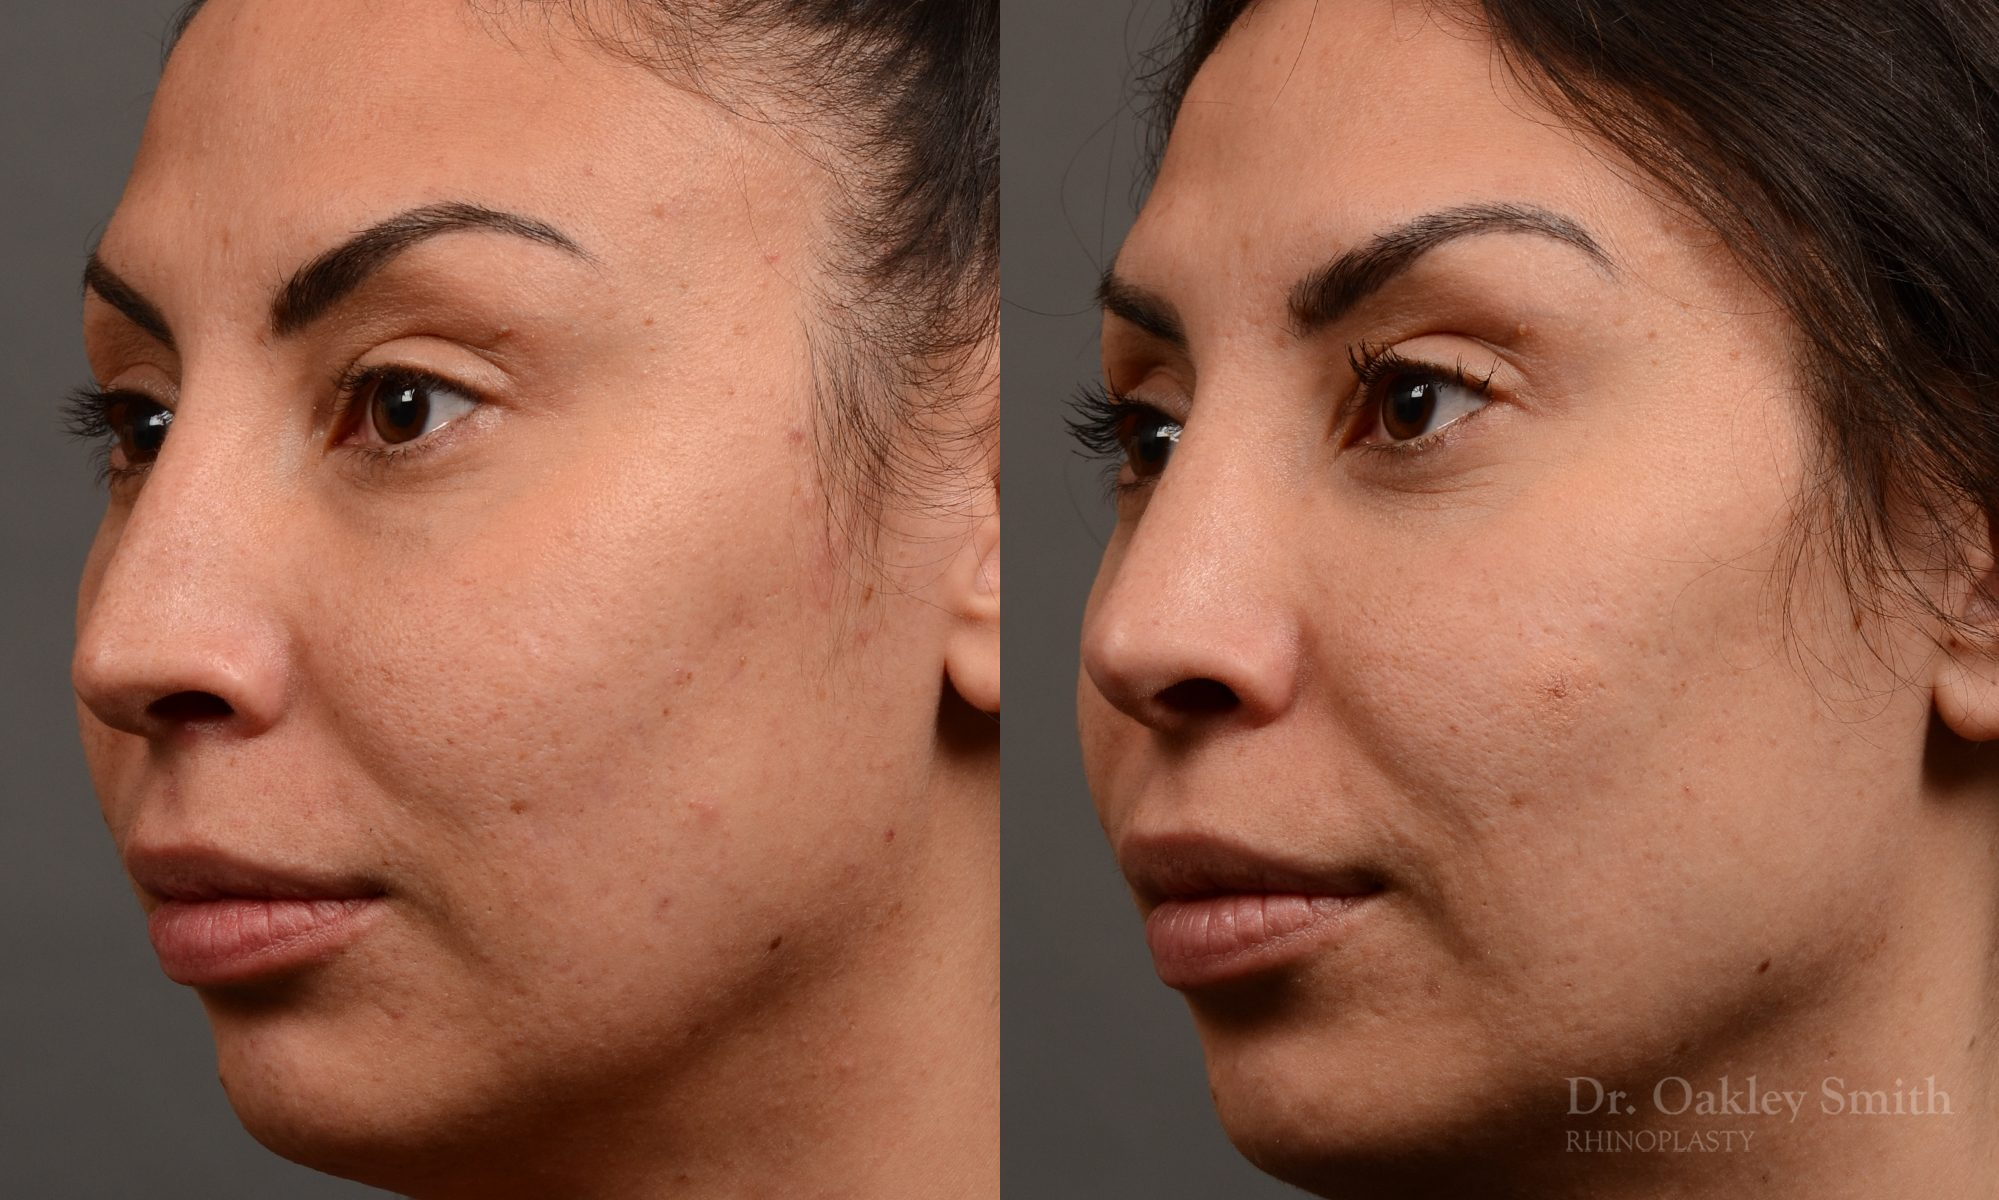 Female rhinoplasty nose surgery to create a more curved nose